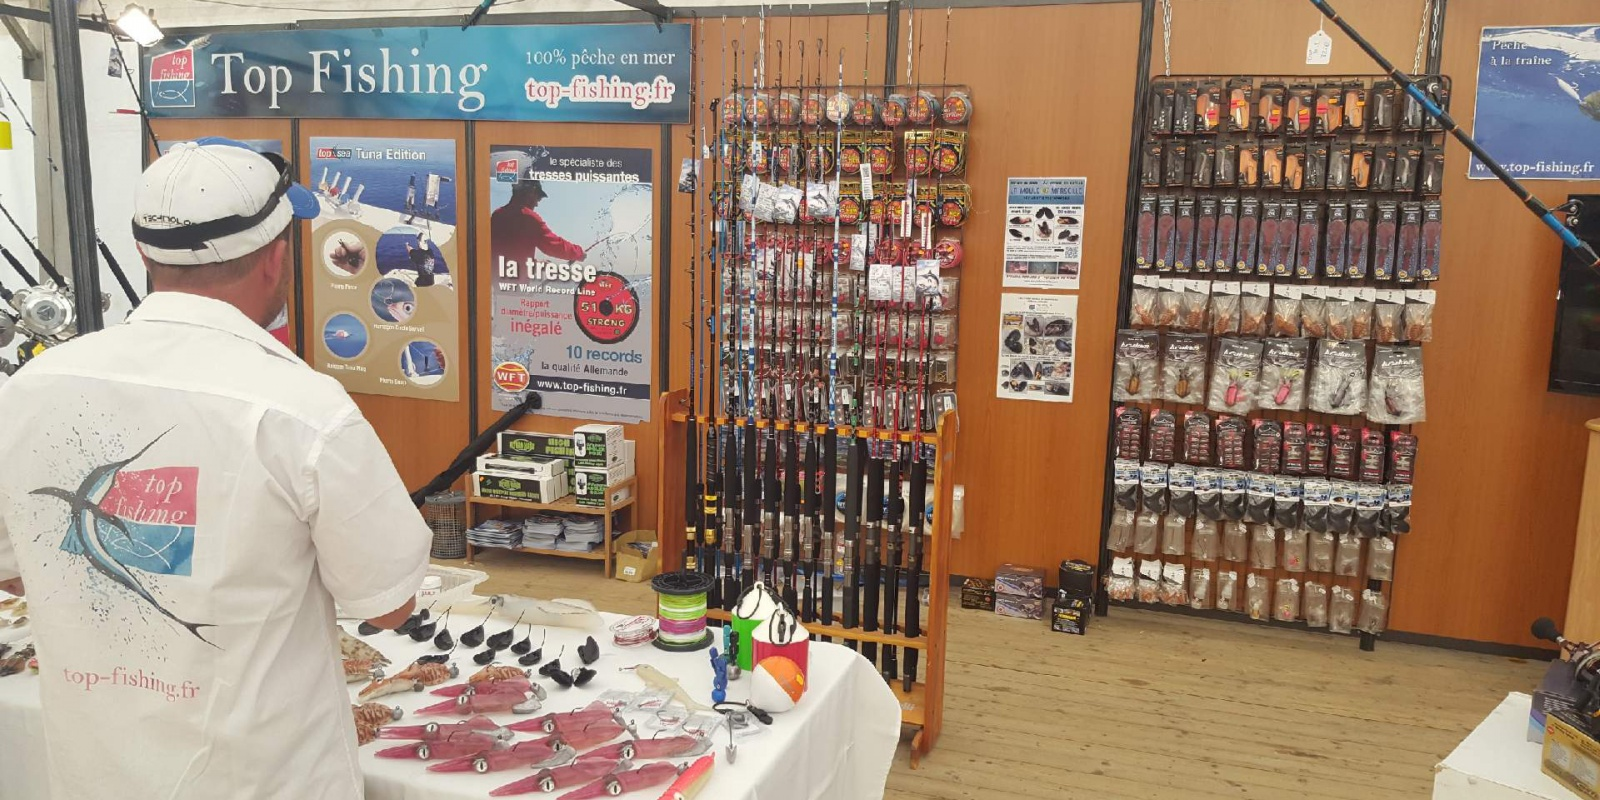 Le stand Top Fishing, plan large